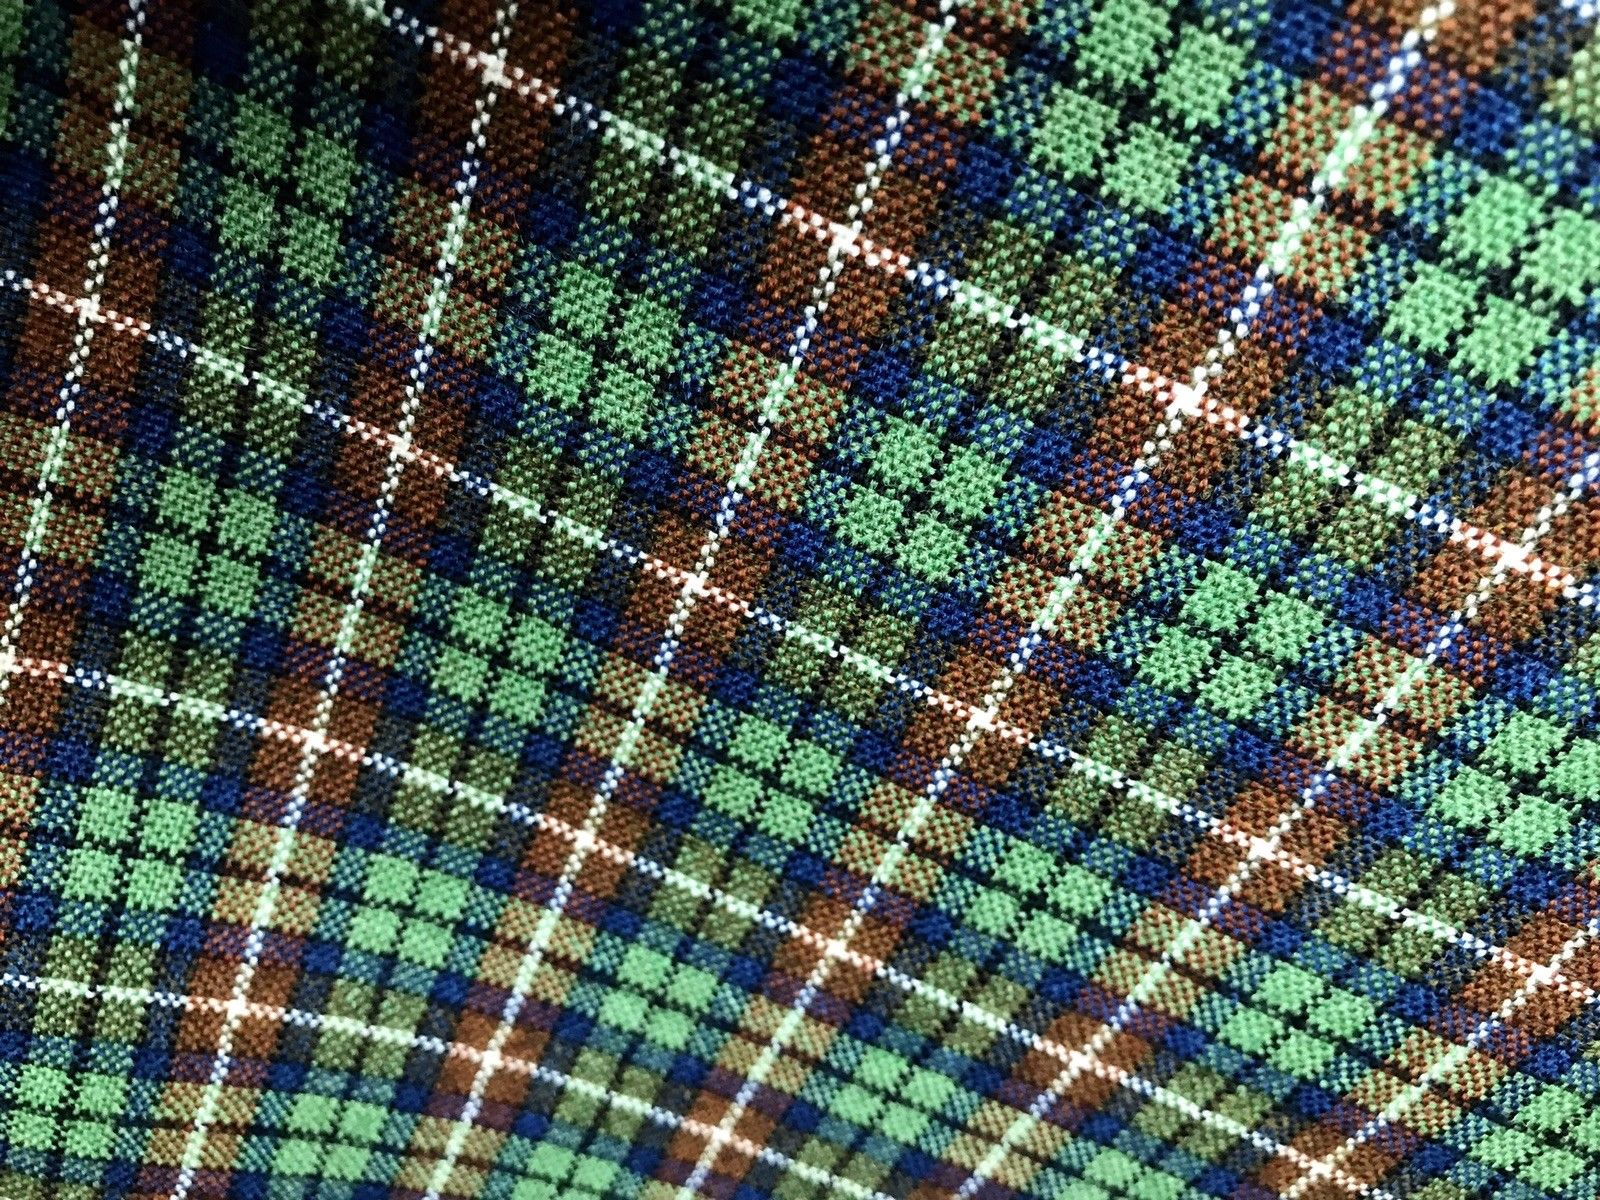 NEW Vintage Wool Plaid Tartan Tweed Woven Fabric - Green -Made in England - Fancy Styles Fabric Boutique